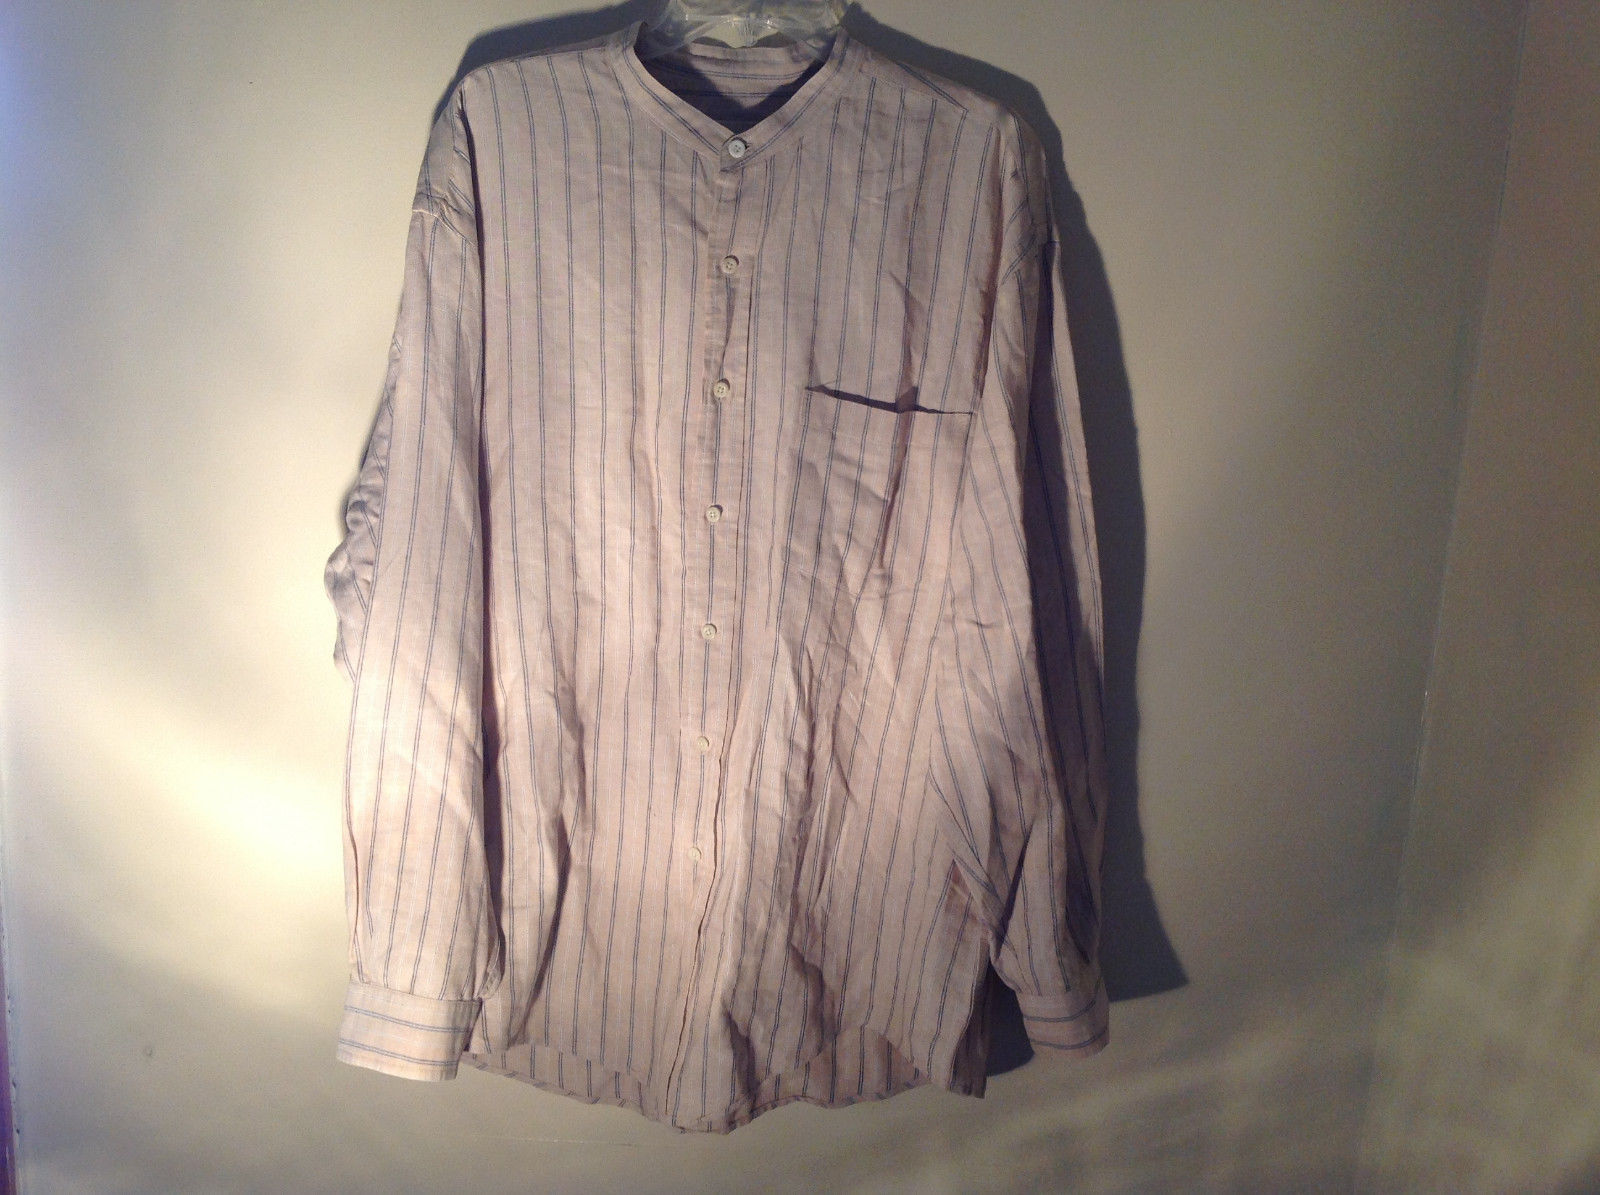 Tan with Blue Stripes Button Up Long Sleeve Dress Shirt Eddie Bauer Size Large